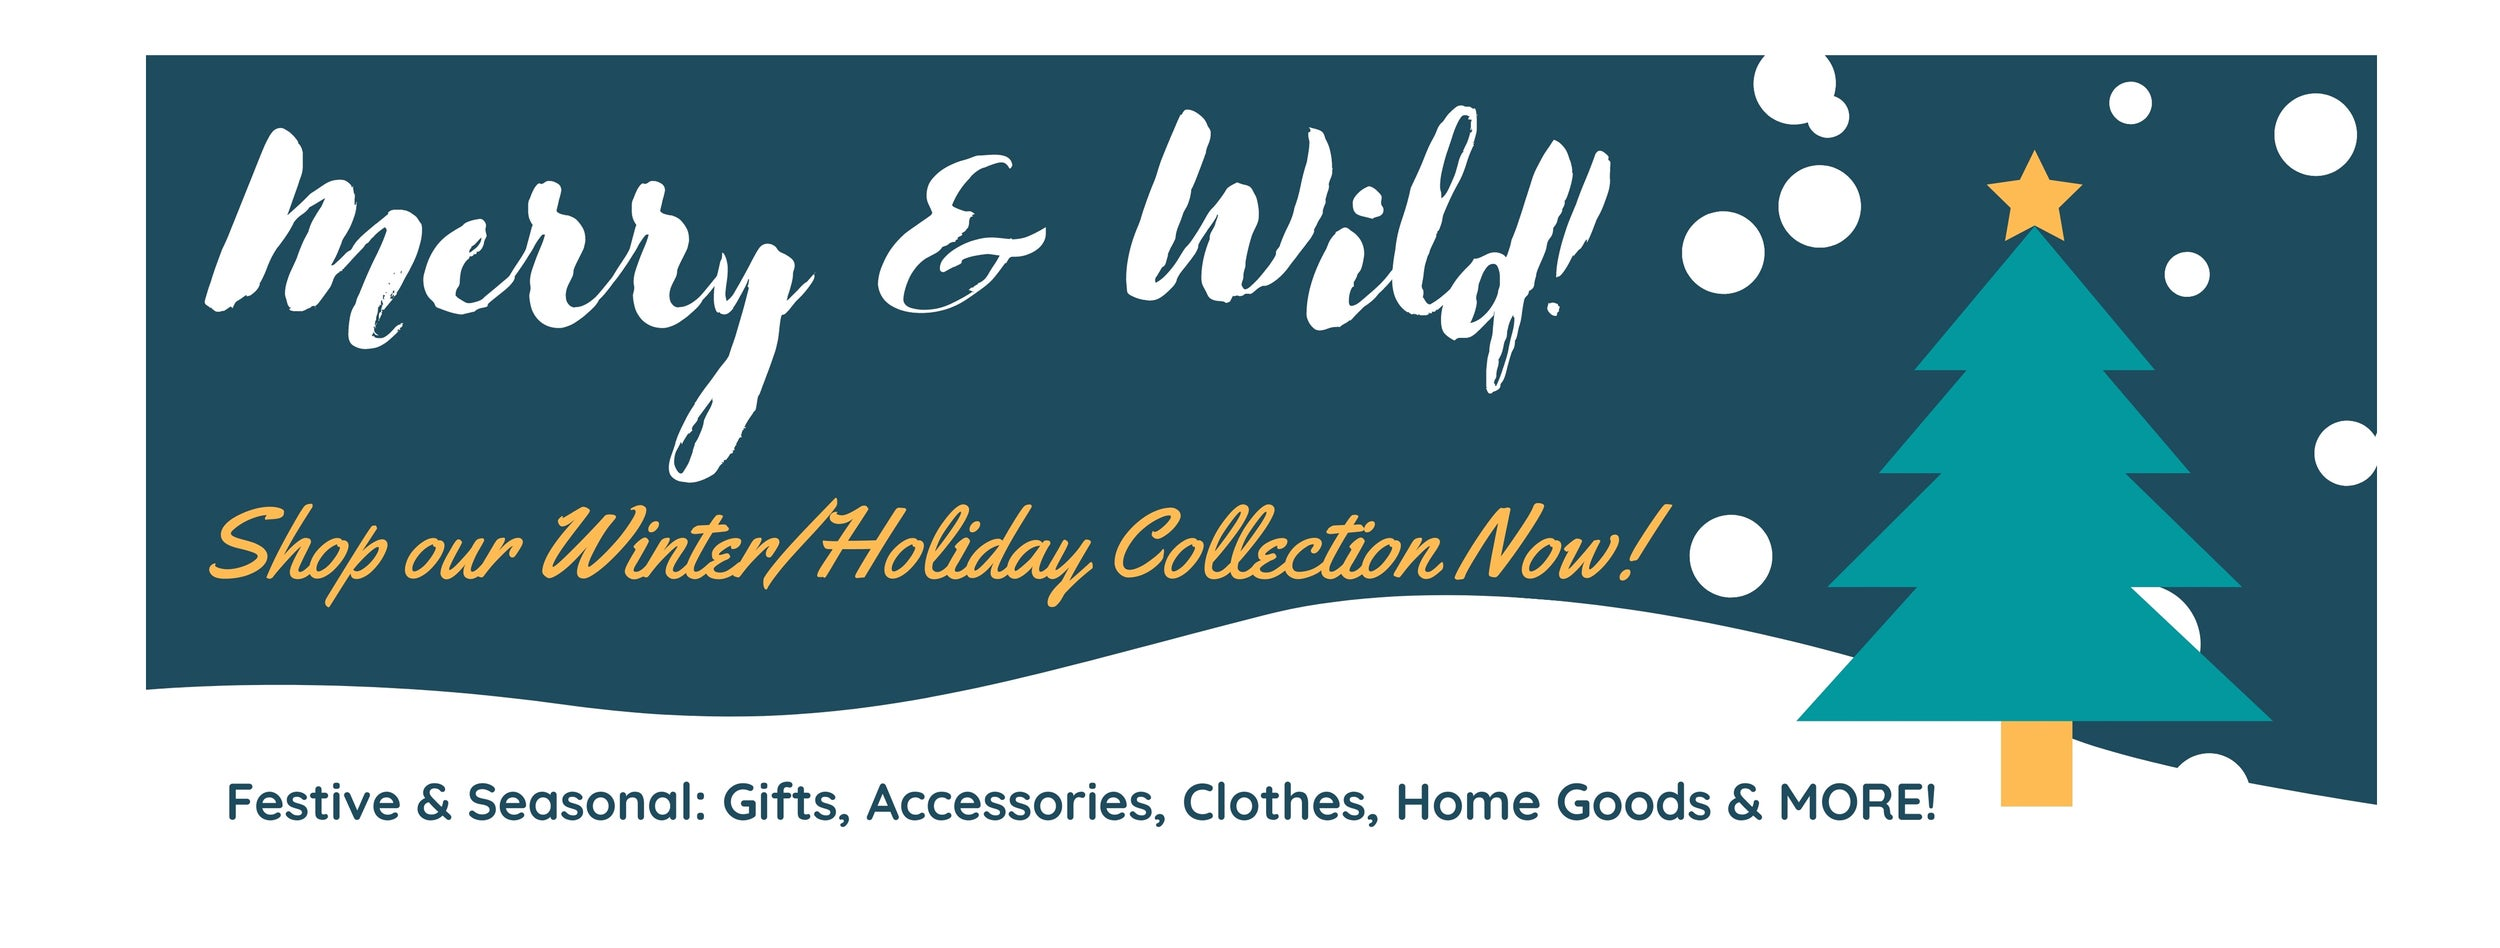 Merry & Wild Holiday Collection